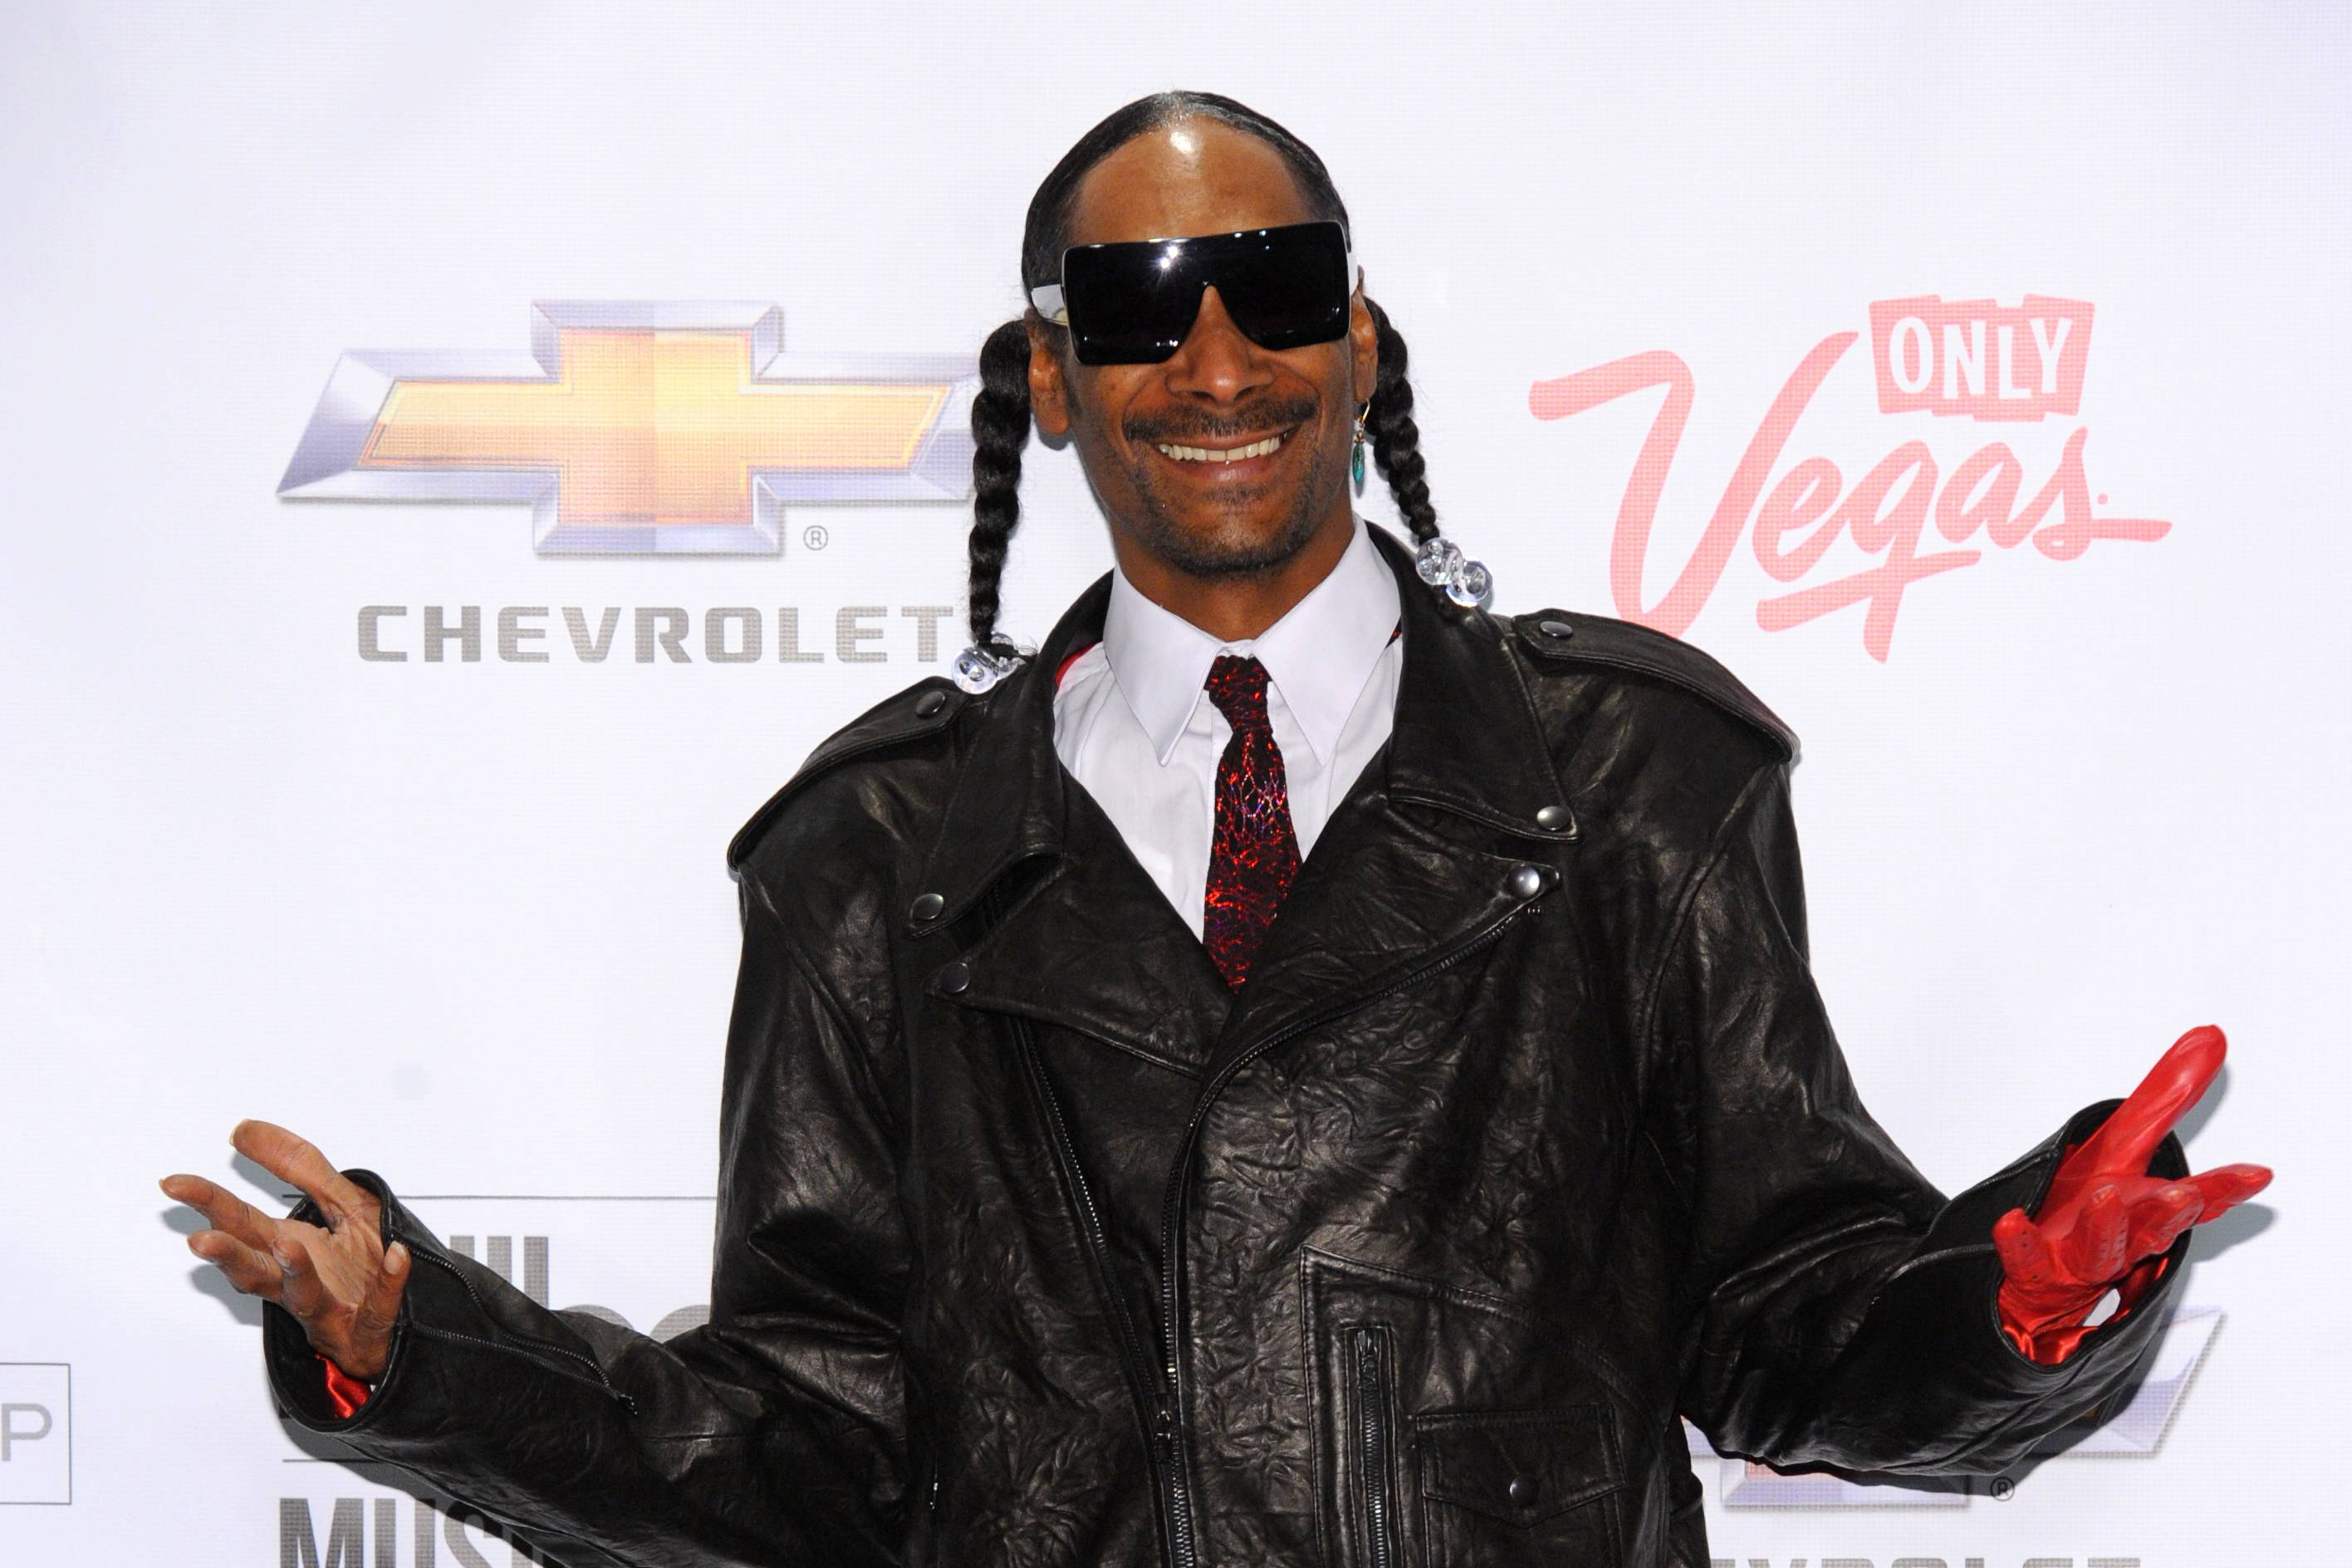 Snoop Dogg vs. Death Row - This one was no secret. Snoop Dogg was one of the last artists to flee from Death Row after years of rumors about Suge Knight's not-so-nice business dealings. It was not a quiet feud. Eventually, once Knight went to jail, Snoop left Death Row and signed with No Limit.(Photo: Kristian Dowling/PictureGroup)